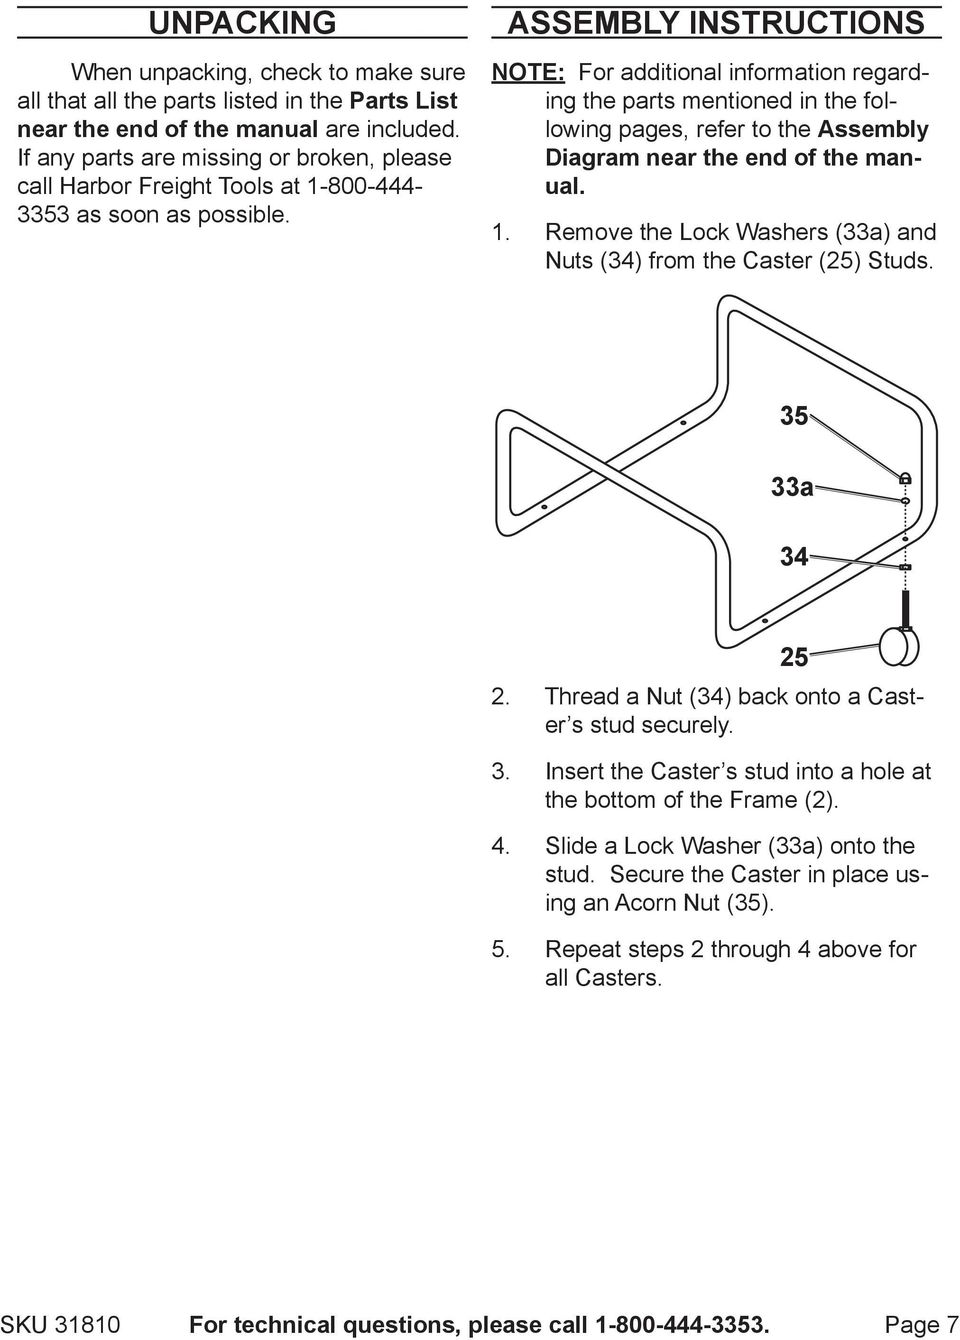 ASSEMBLY INSTRUCTIONS NOTE: For additional information regarding the parts mentioned in the following pages, refer to the Assembly Diagram near the end of the manual.